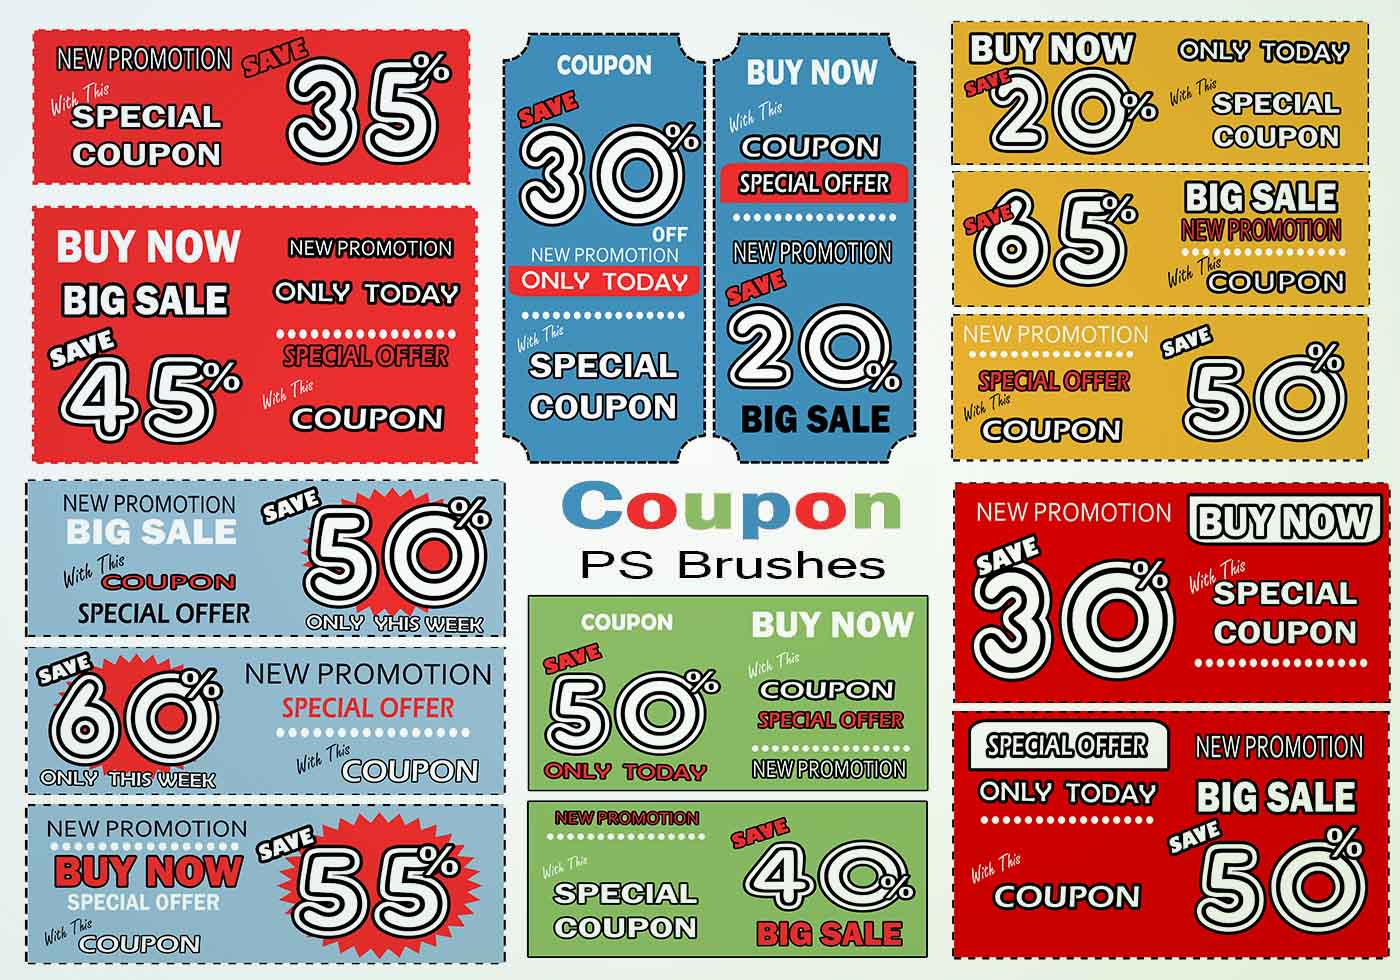 Z gallerie coupon 20